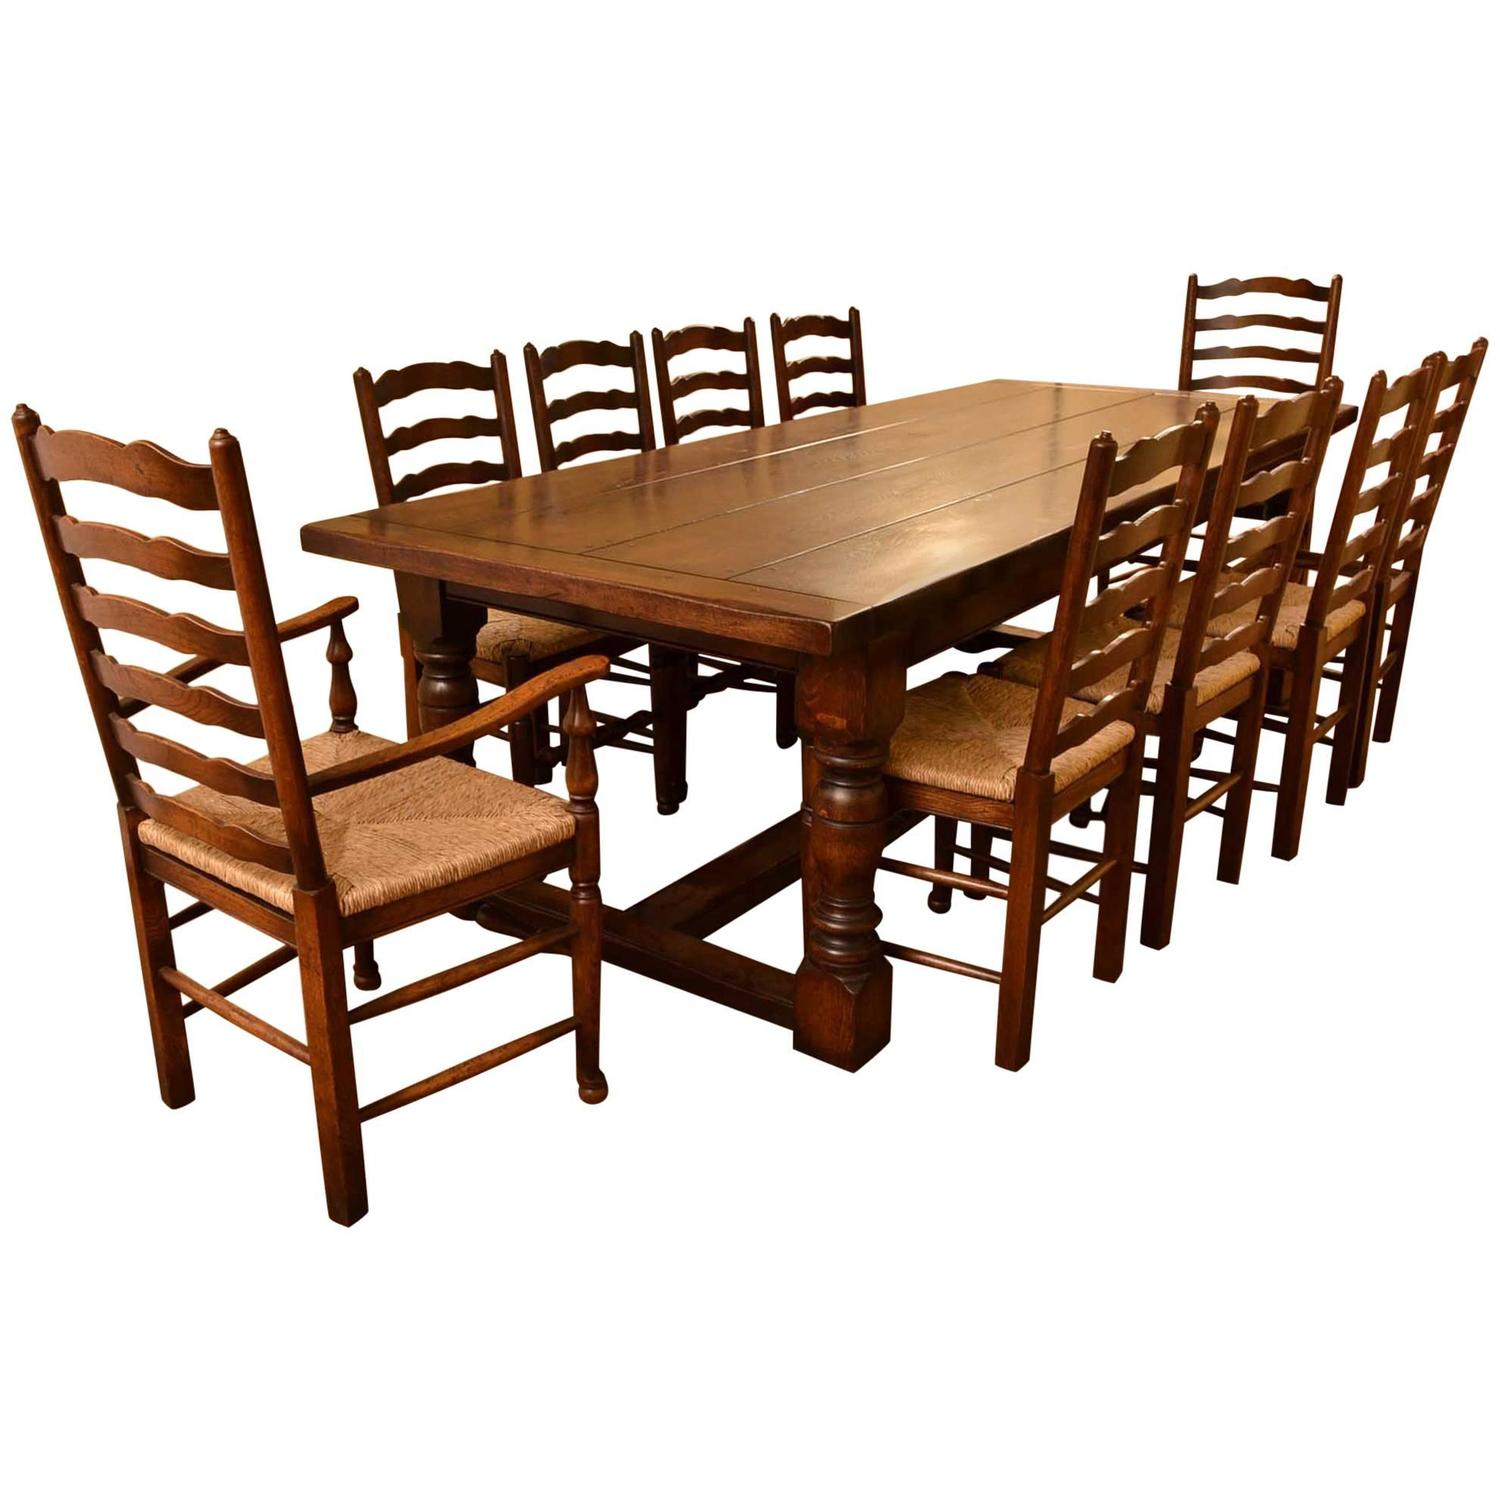 Kitchen Table Seats 10 Bespoke Solid Oak Refectory Dining Table And 10 Chairs